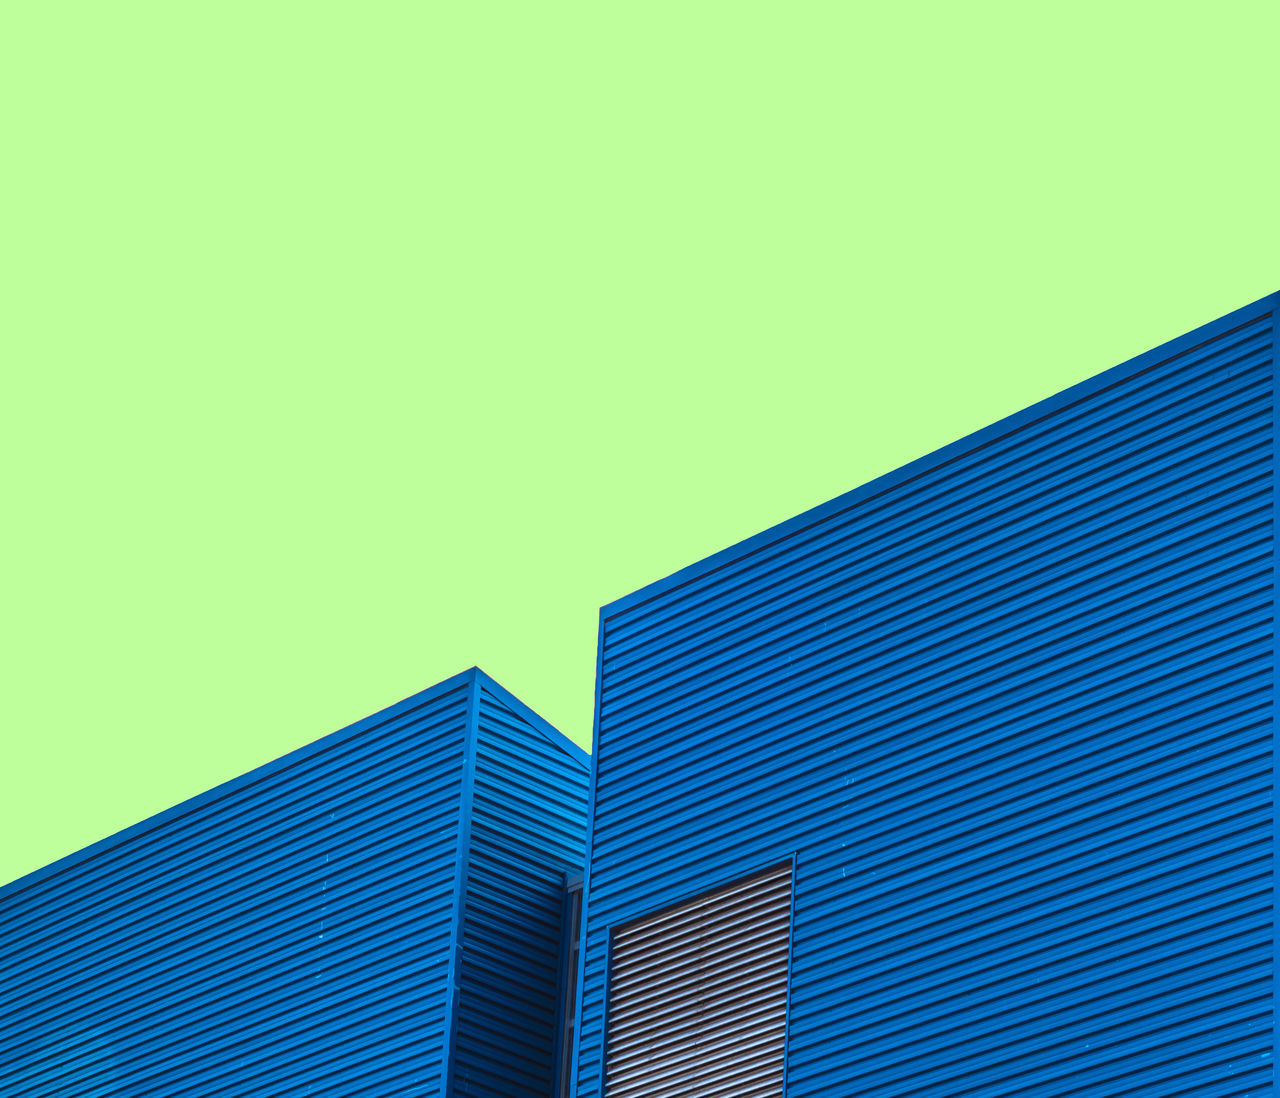 Factory Architecture Blue Building Exterior Built Structure City Clear Sky Day Factory Green Color Low Angle View Minimal Minimalism Minimalism Photography Minimalist Minimalist Architecture Minimalist Photography  Minimalistic Minimalmood Minimalobsession Modern No People Outdoors Skyscraper Wall Warehouse Minimalist Architecture